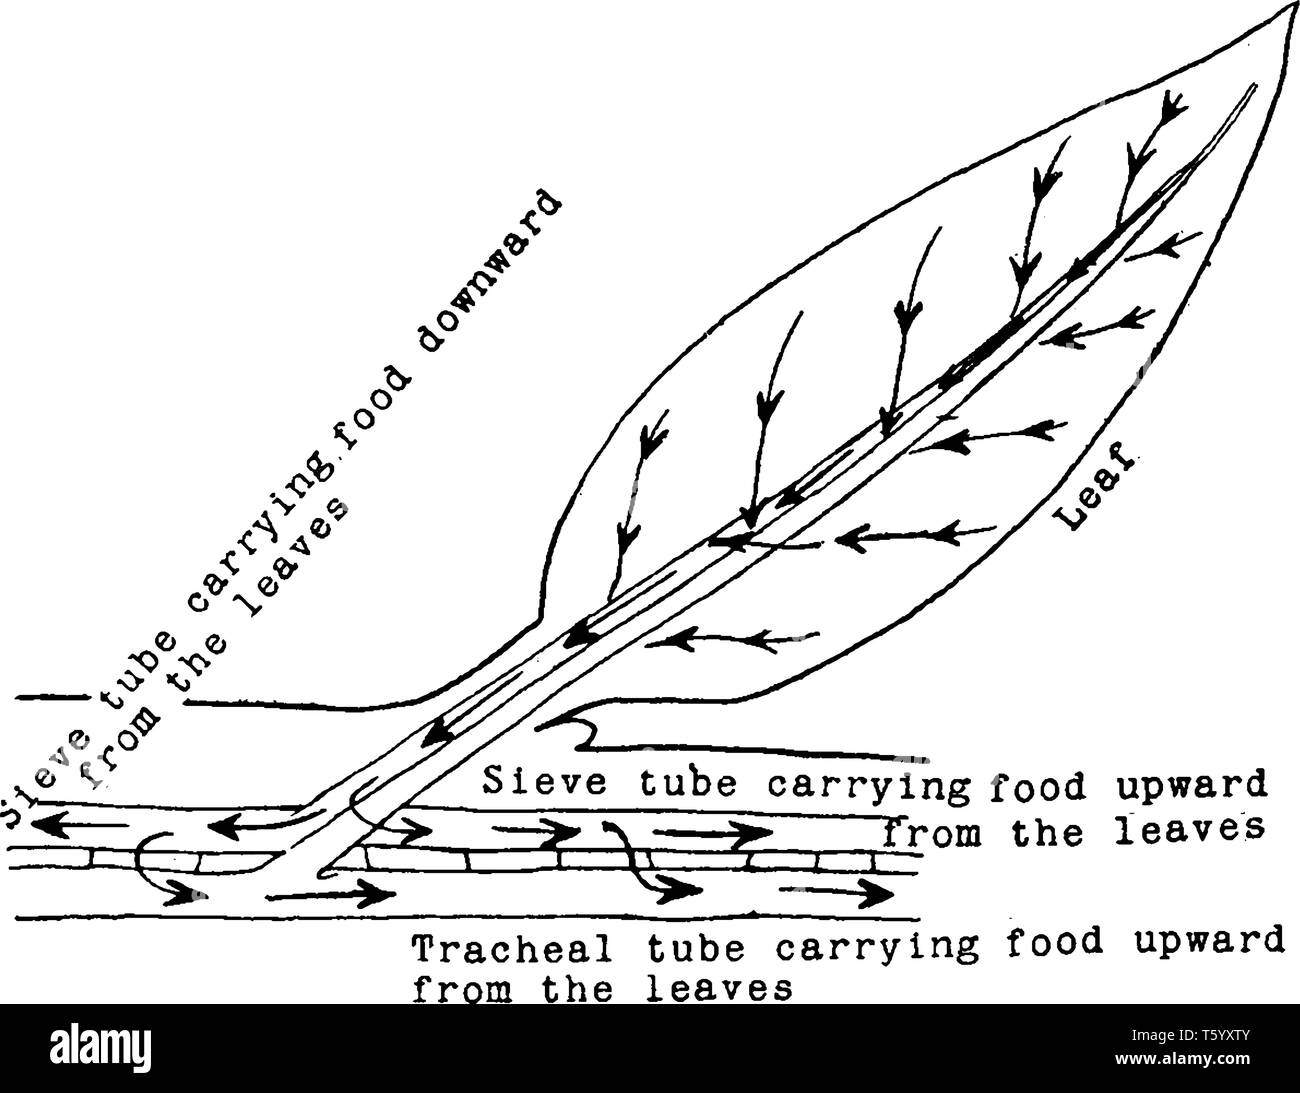 a diagram showing the descent of food from the leaf to the stem, and it's  up and down circulation through the sieve tubes, and up through the tracheal